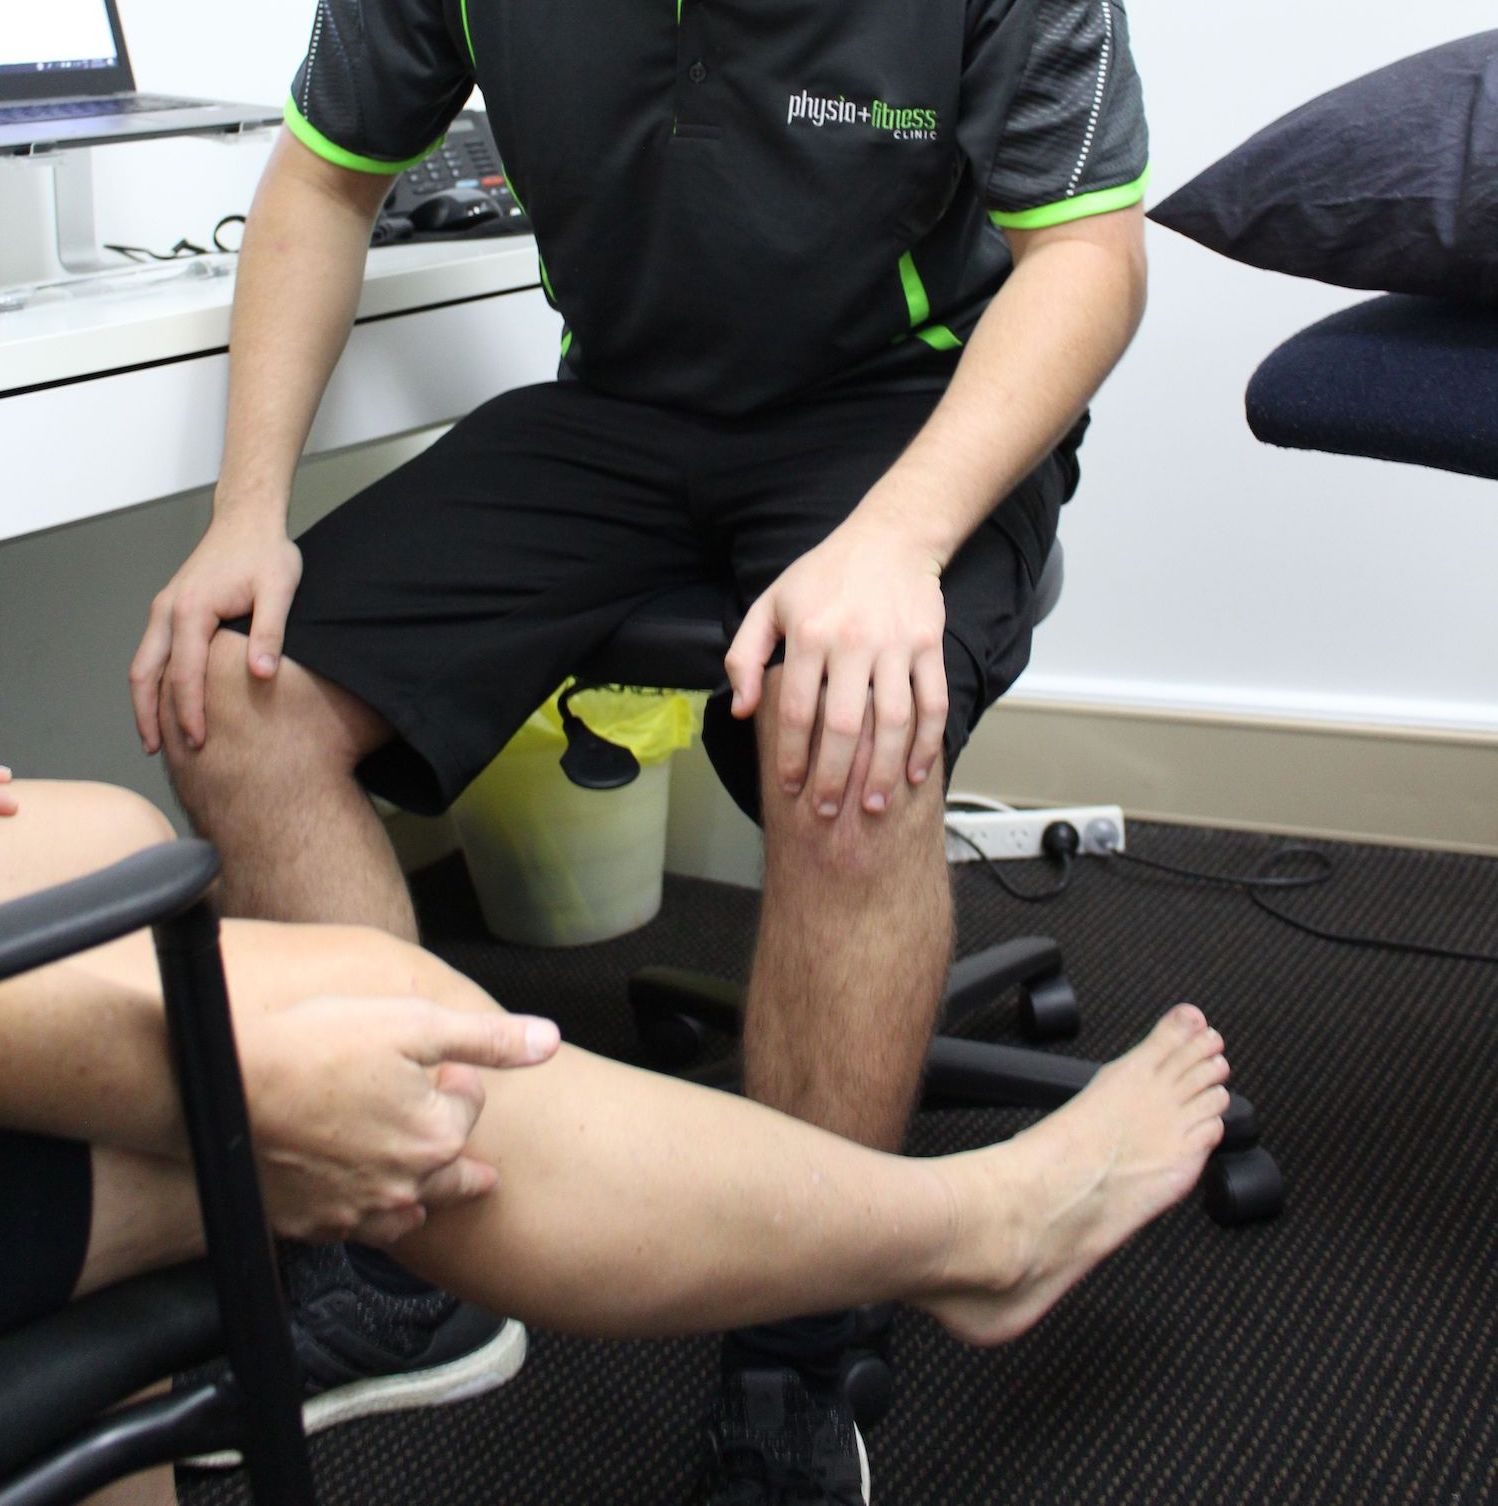 calf muscles, and what makes some people so susceptible to cramps and others not?